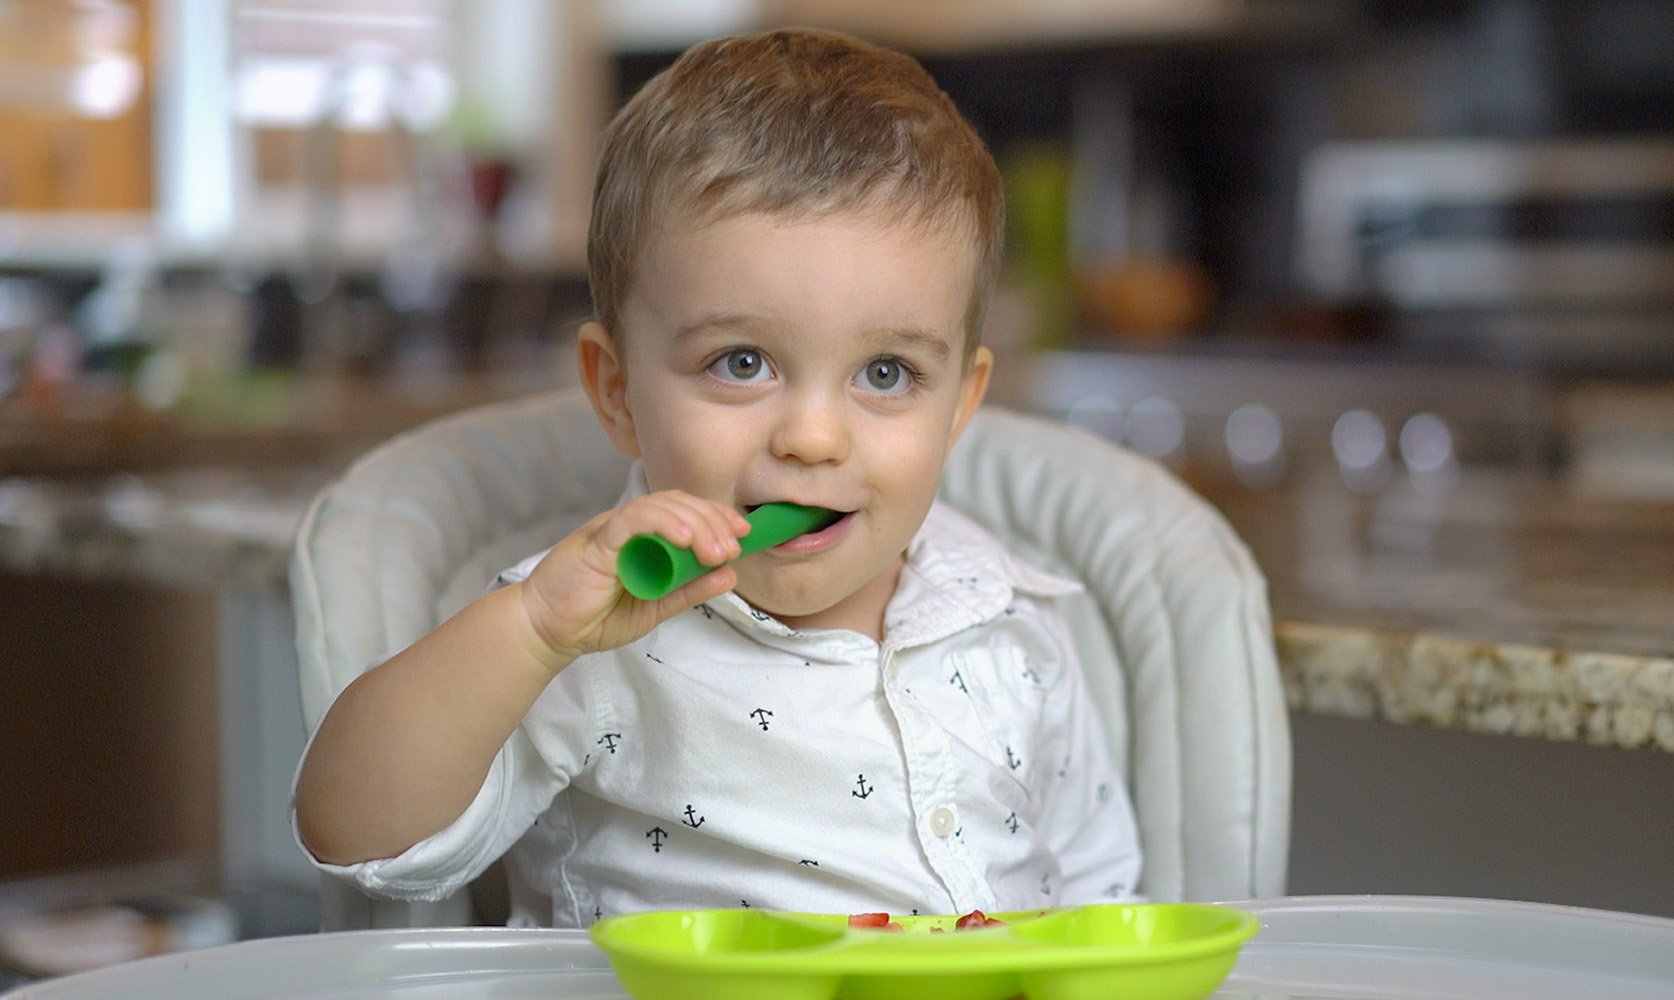 Olababy 100% Silicone Soft-Tip Training Spoon Teether for Baby Led Weaning 2pack by Olababy (Image #9)